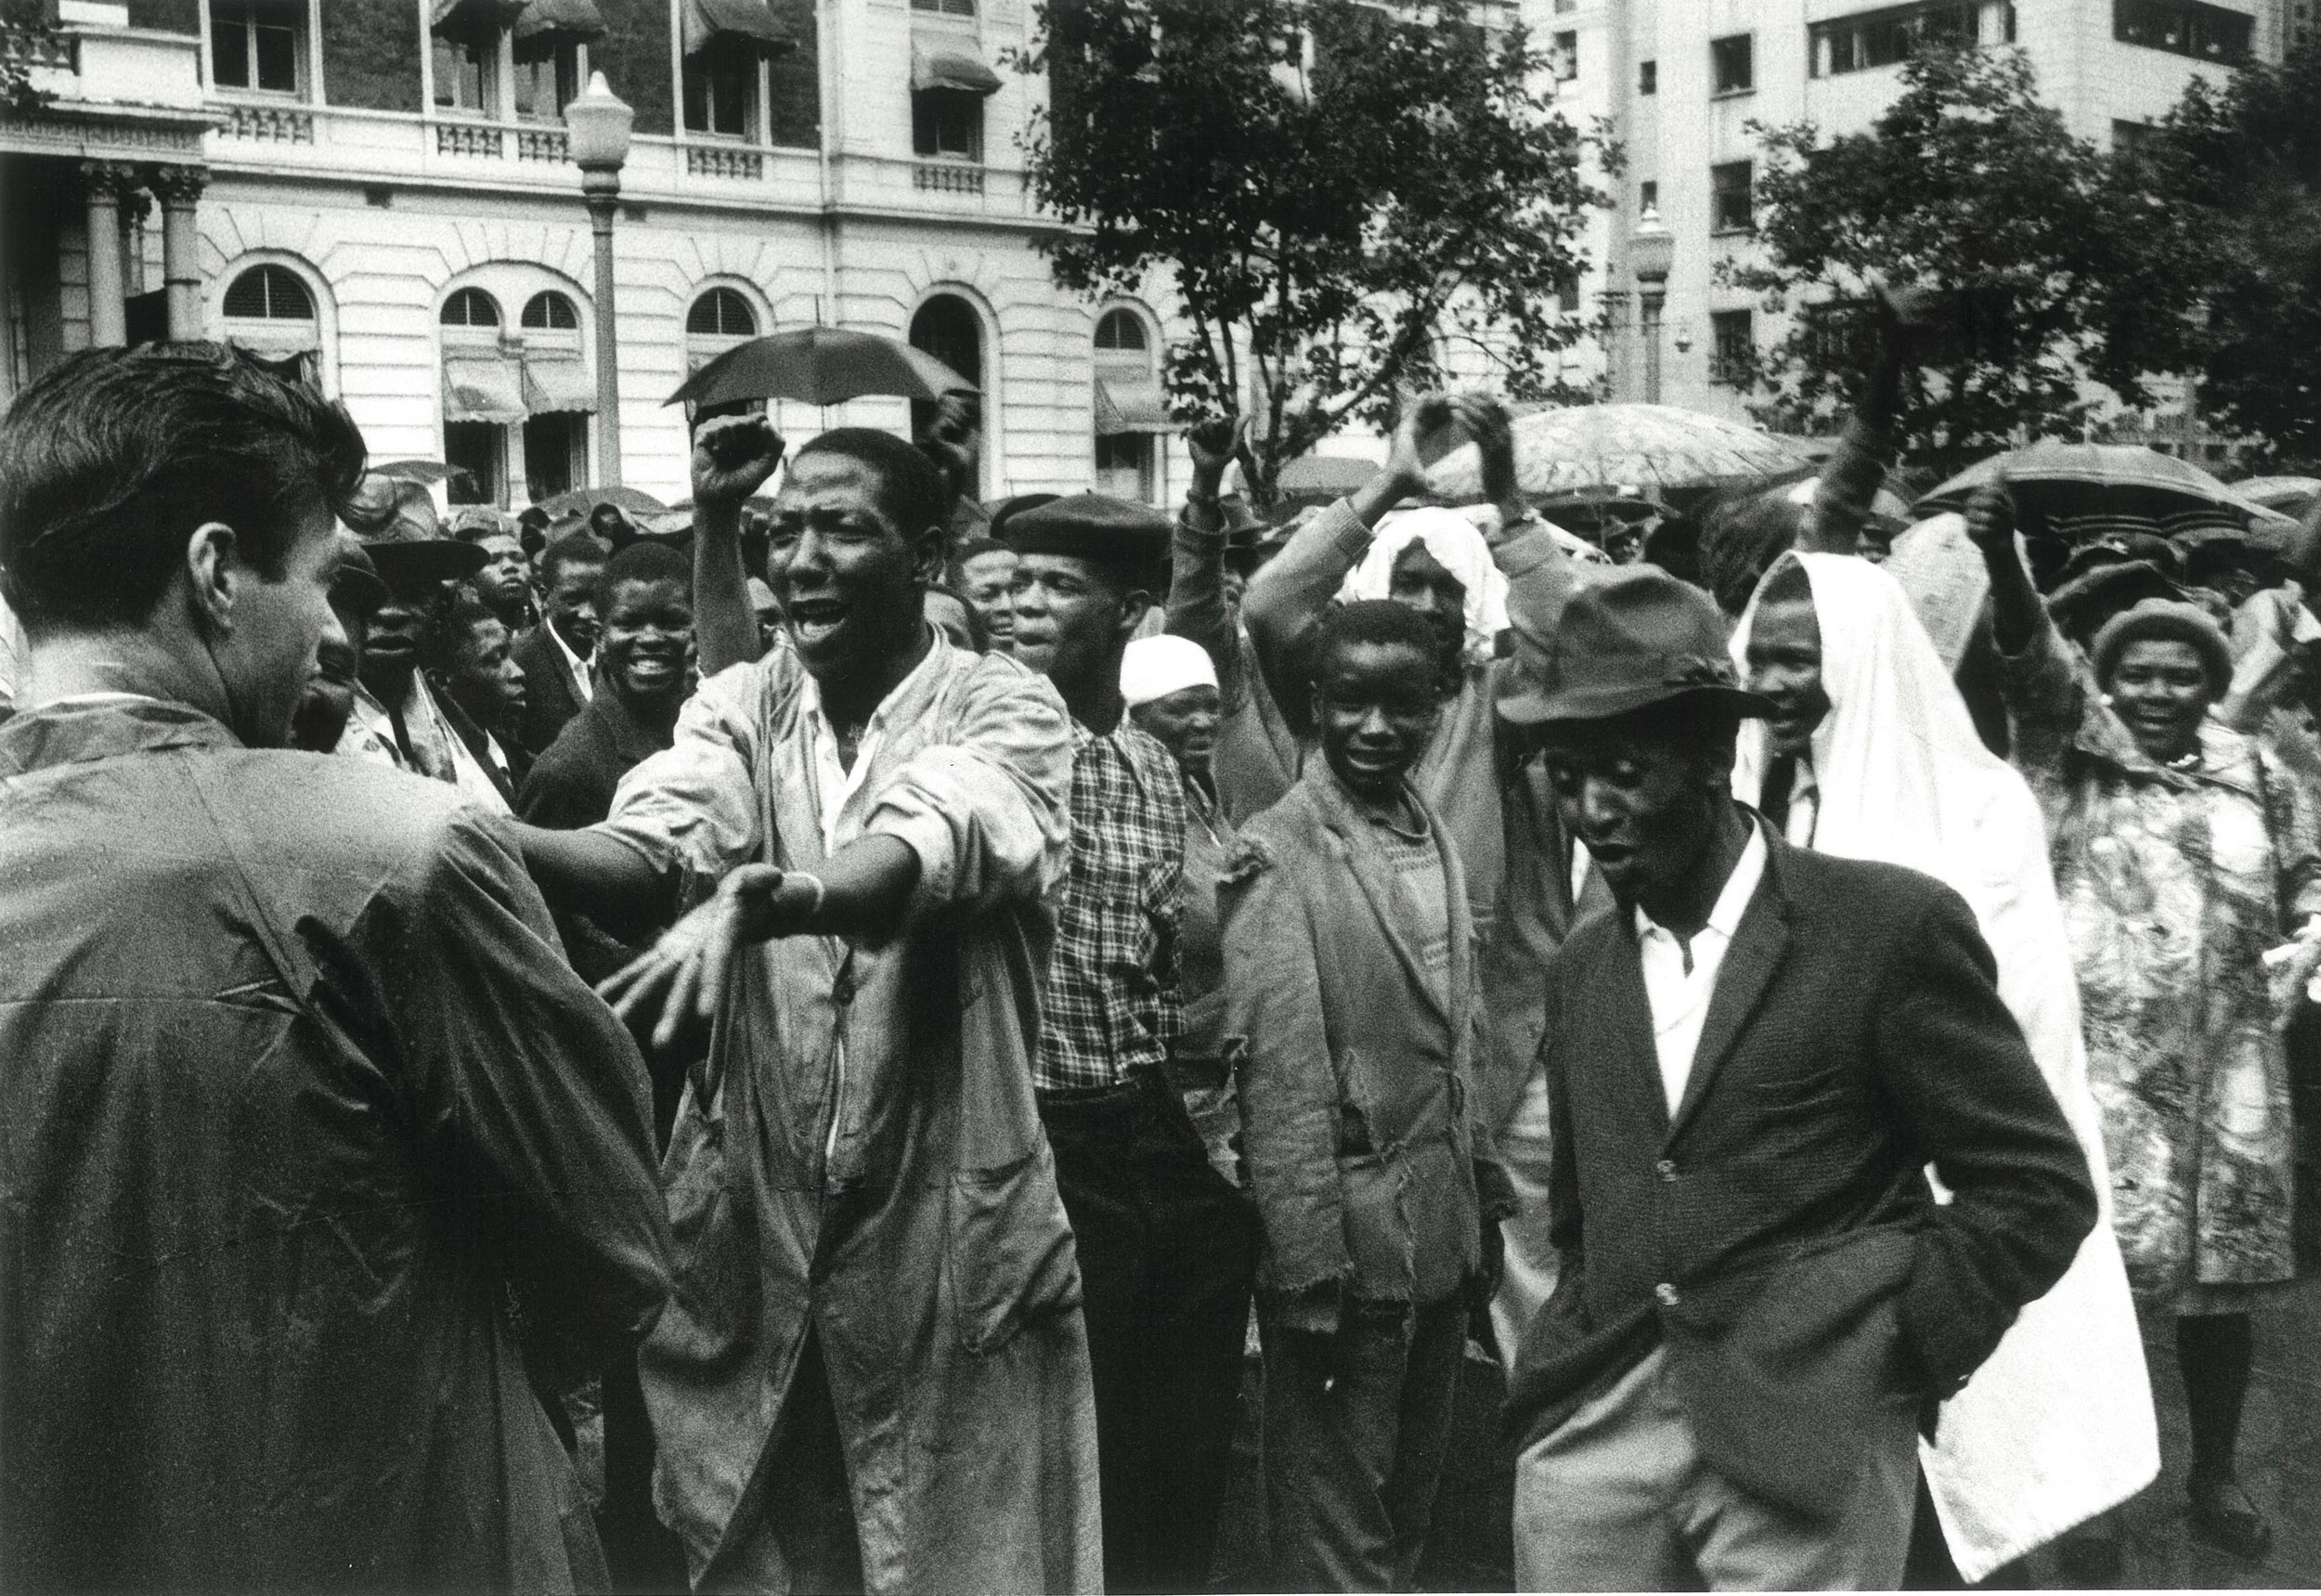 1960 – Africans at the Congress of Democrats rally in the rain, outside Johannesburg Town Hall   Courtesy of the Estate of John Goldblatt